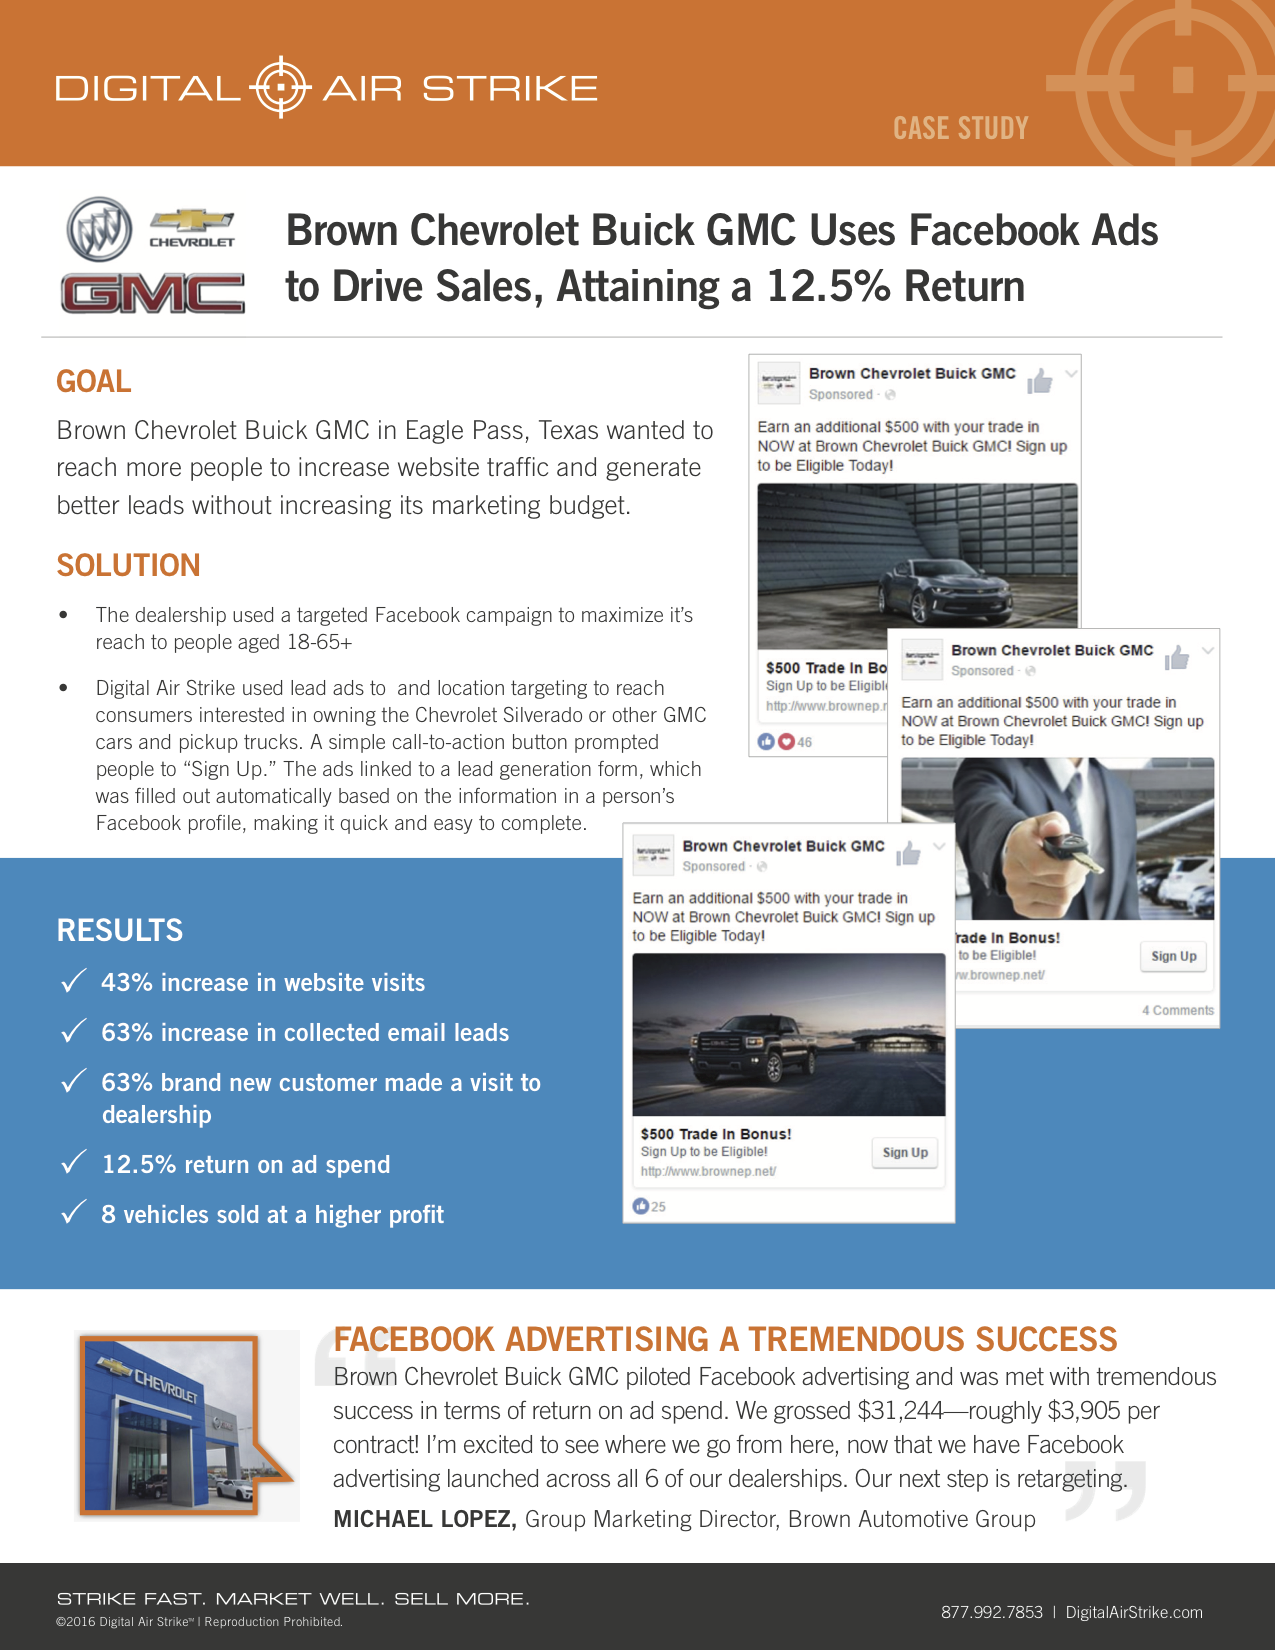 Digital Air Strike: Brown Automotive Group – Facebook Campaign - The